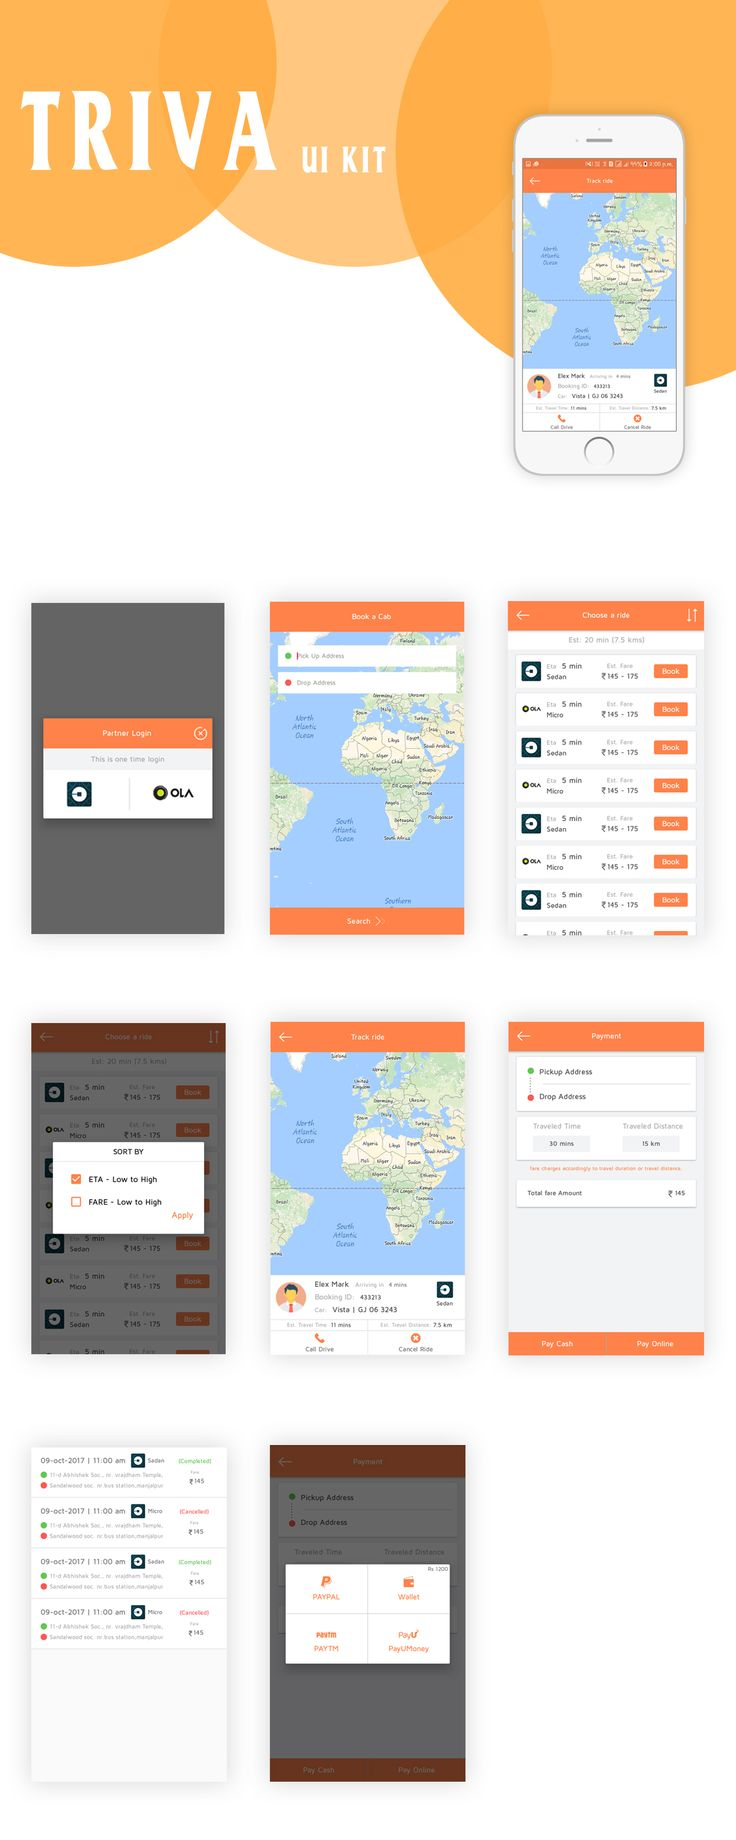 TRIVA UI KIT comes with the finest colour and design. It has all features which are important and used in Taxi booking Application. It starts with below features like : 1. Login Page 2. Book a Cab(Taxi) 3. Choose a Ride 4. Filter by Price 5. Track Ride 6. Payment Page 7. Payment Option & Booked ! Download Link :http://wsdesign.in/home/detail/75